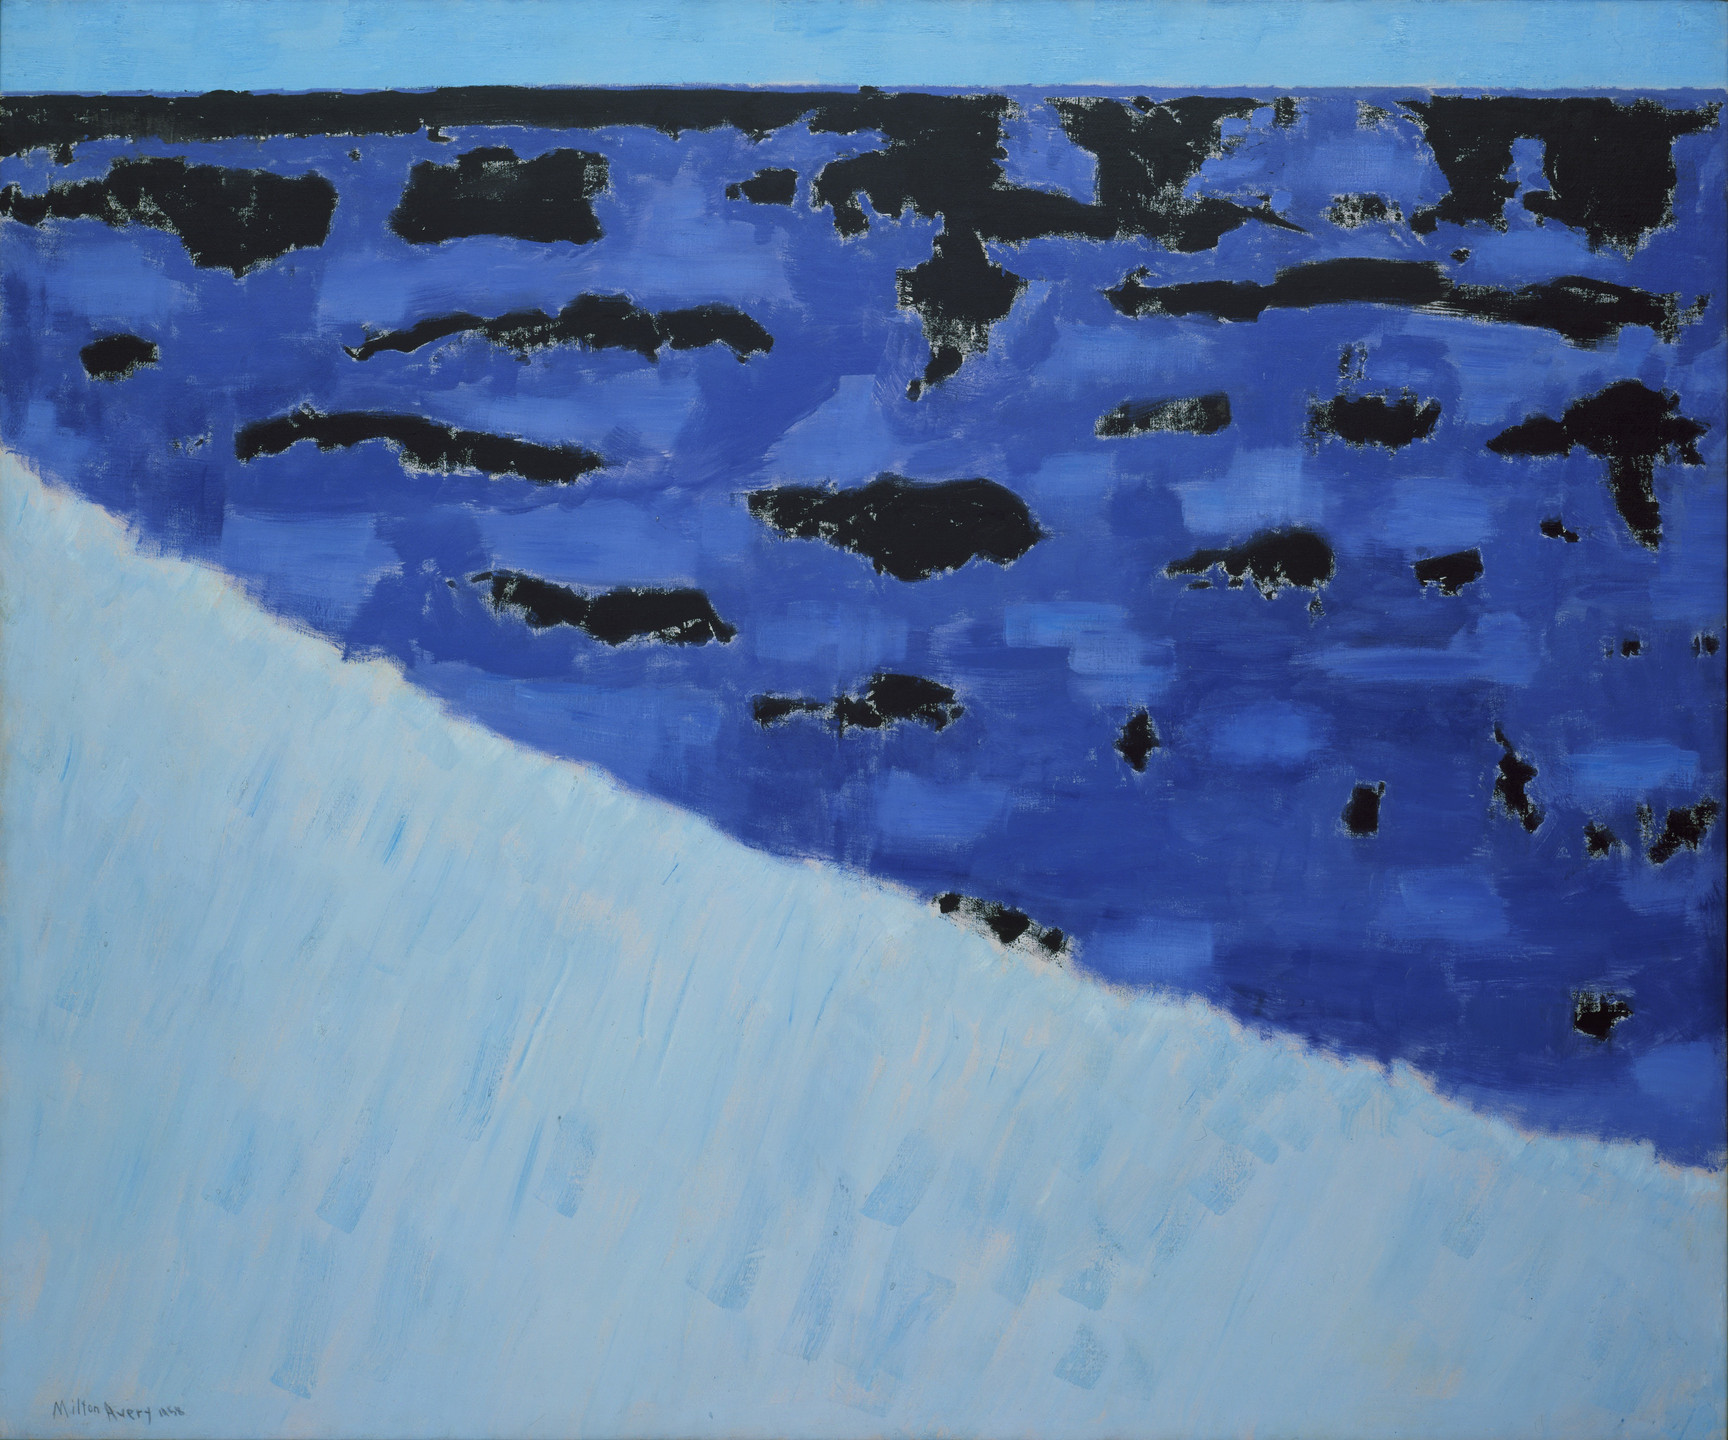 Milton Avery. Sea Grasses and Blue Sea. 1958